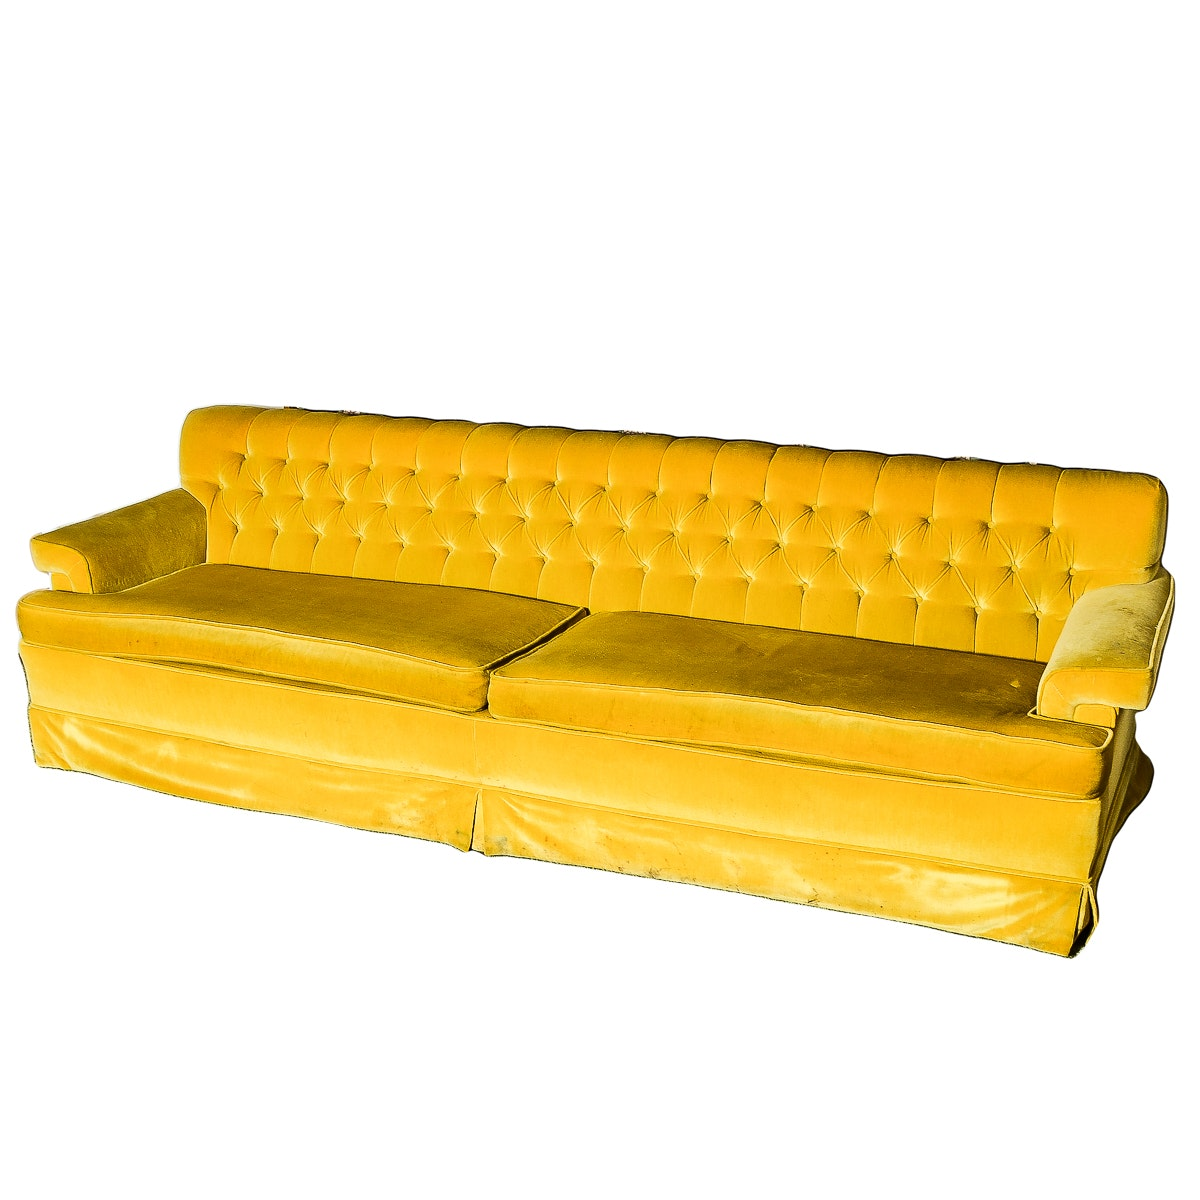 Completely new Vintage Mustard Yellow Velvet Couch : EBTH YH96